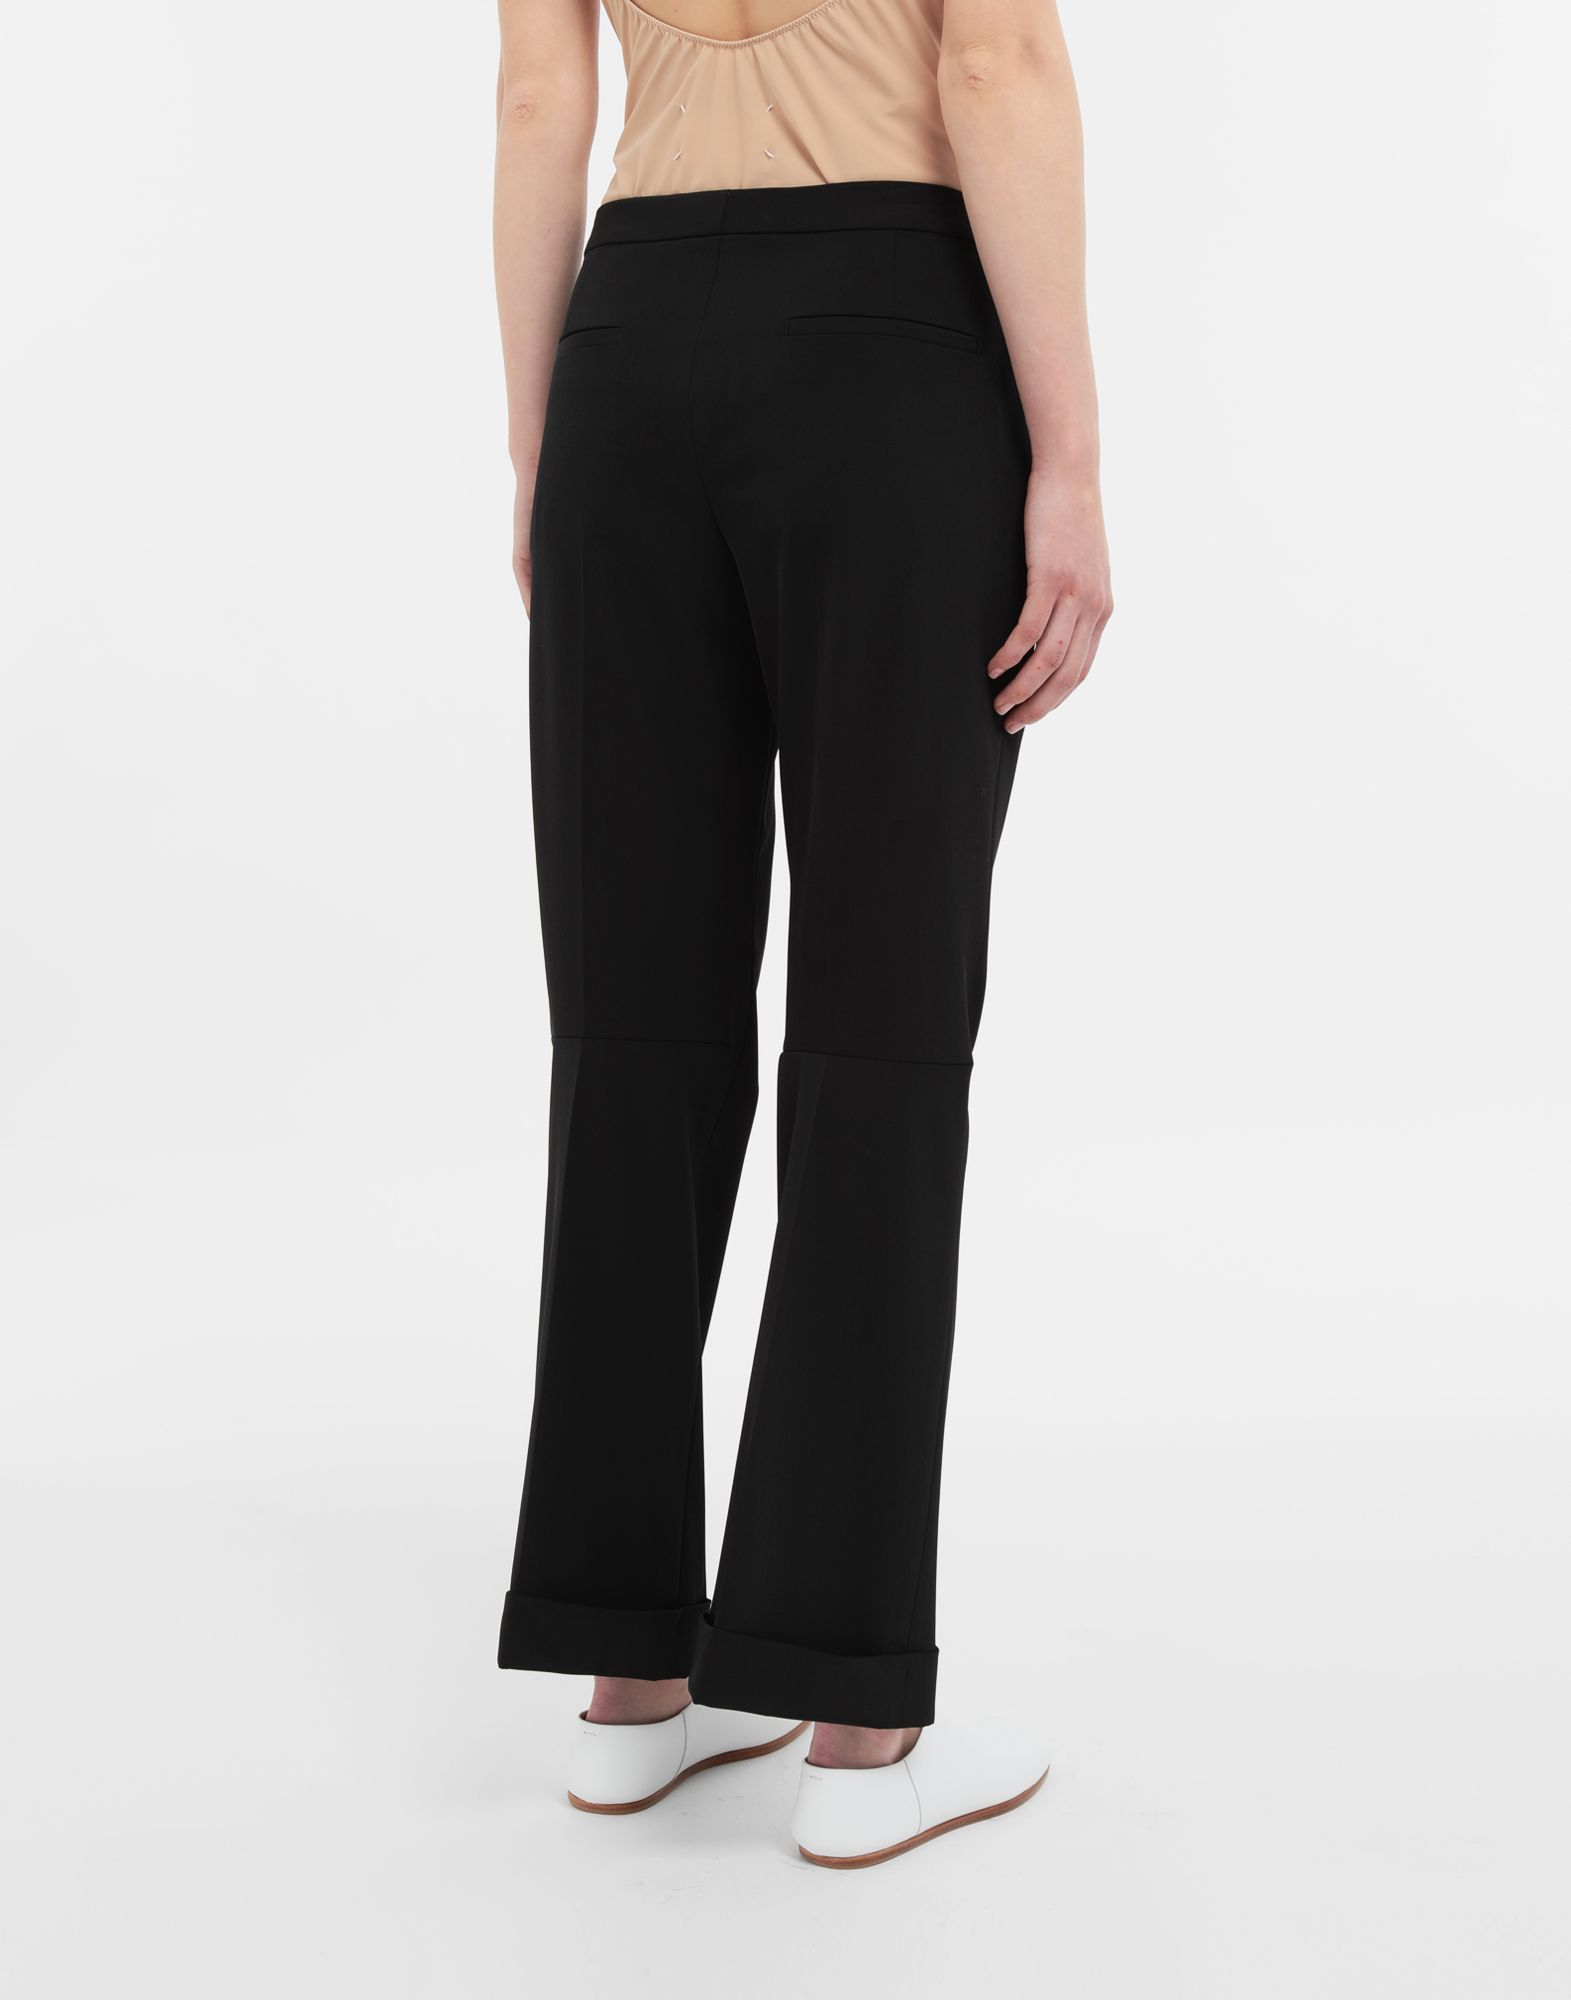 MAISON MARGIELA Straight-leg woven pants Casual pants Woman e